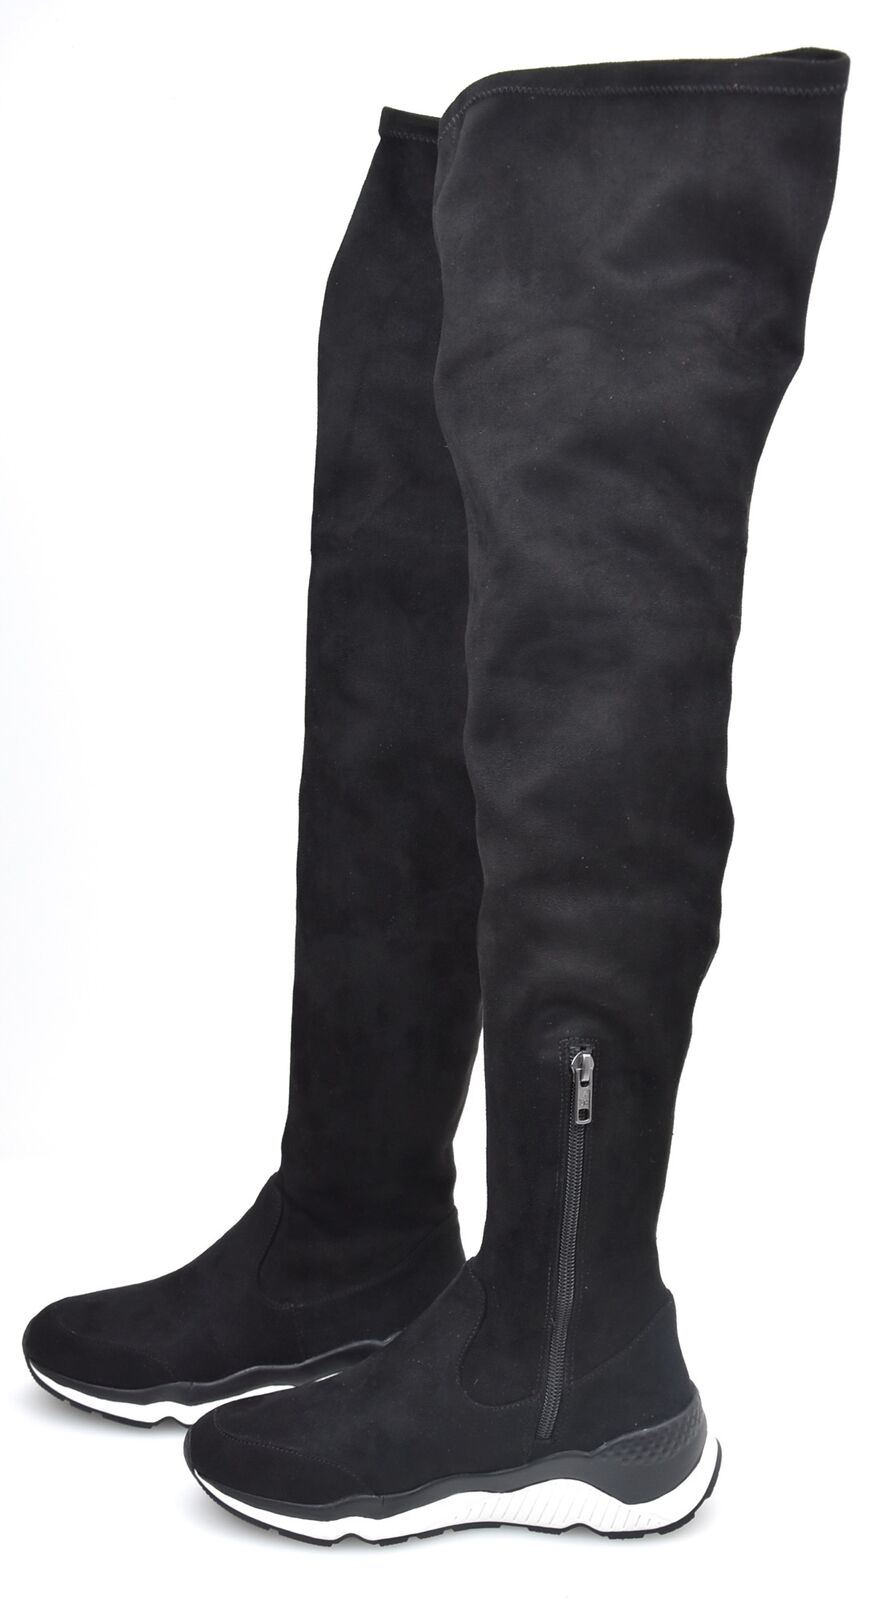 ASH WOMAN WINTER HIGH OVER KNEE BOOTS SUEDE CODE MIRACLE FW16-S-114979-009